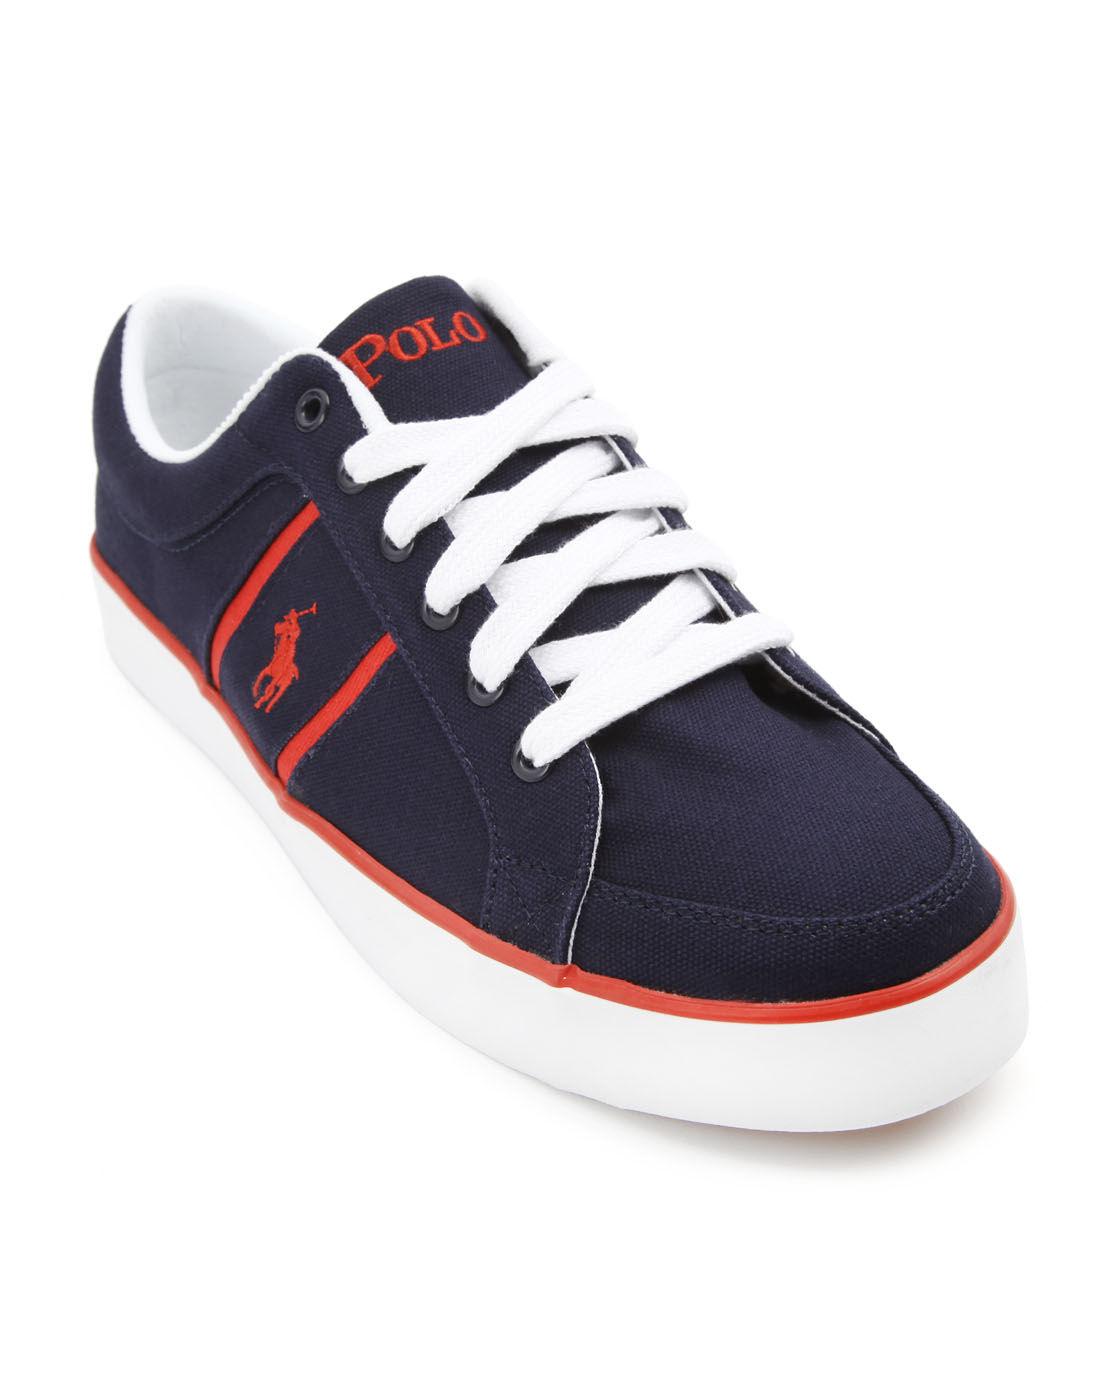 bolingbrook low navy sneakers by polo ralph lauren low sneakers made. Black Bedroom Furniture Sets. Home Design Ideas